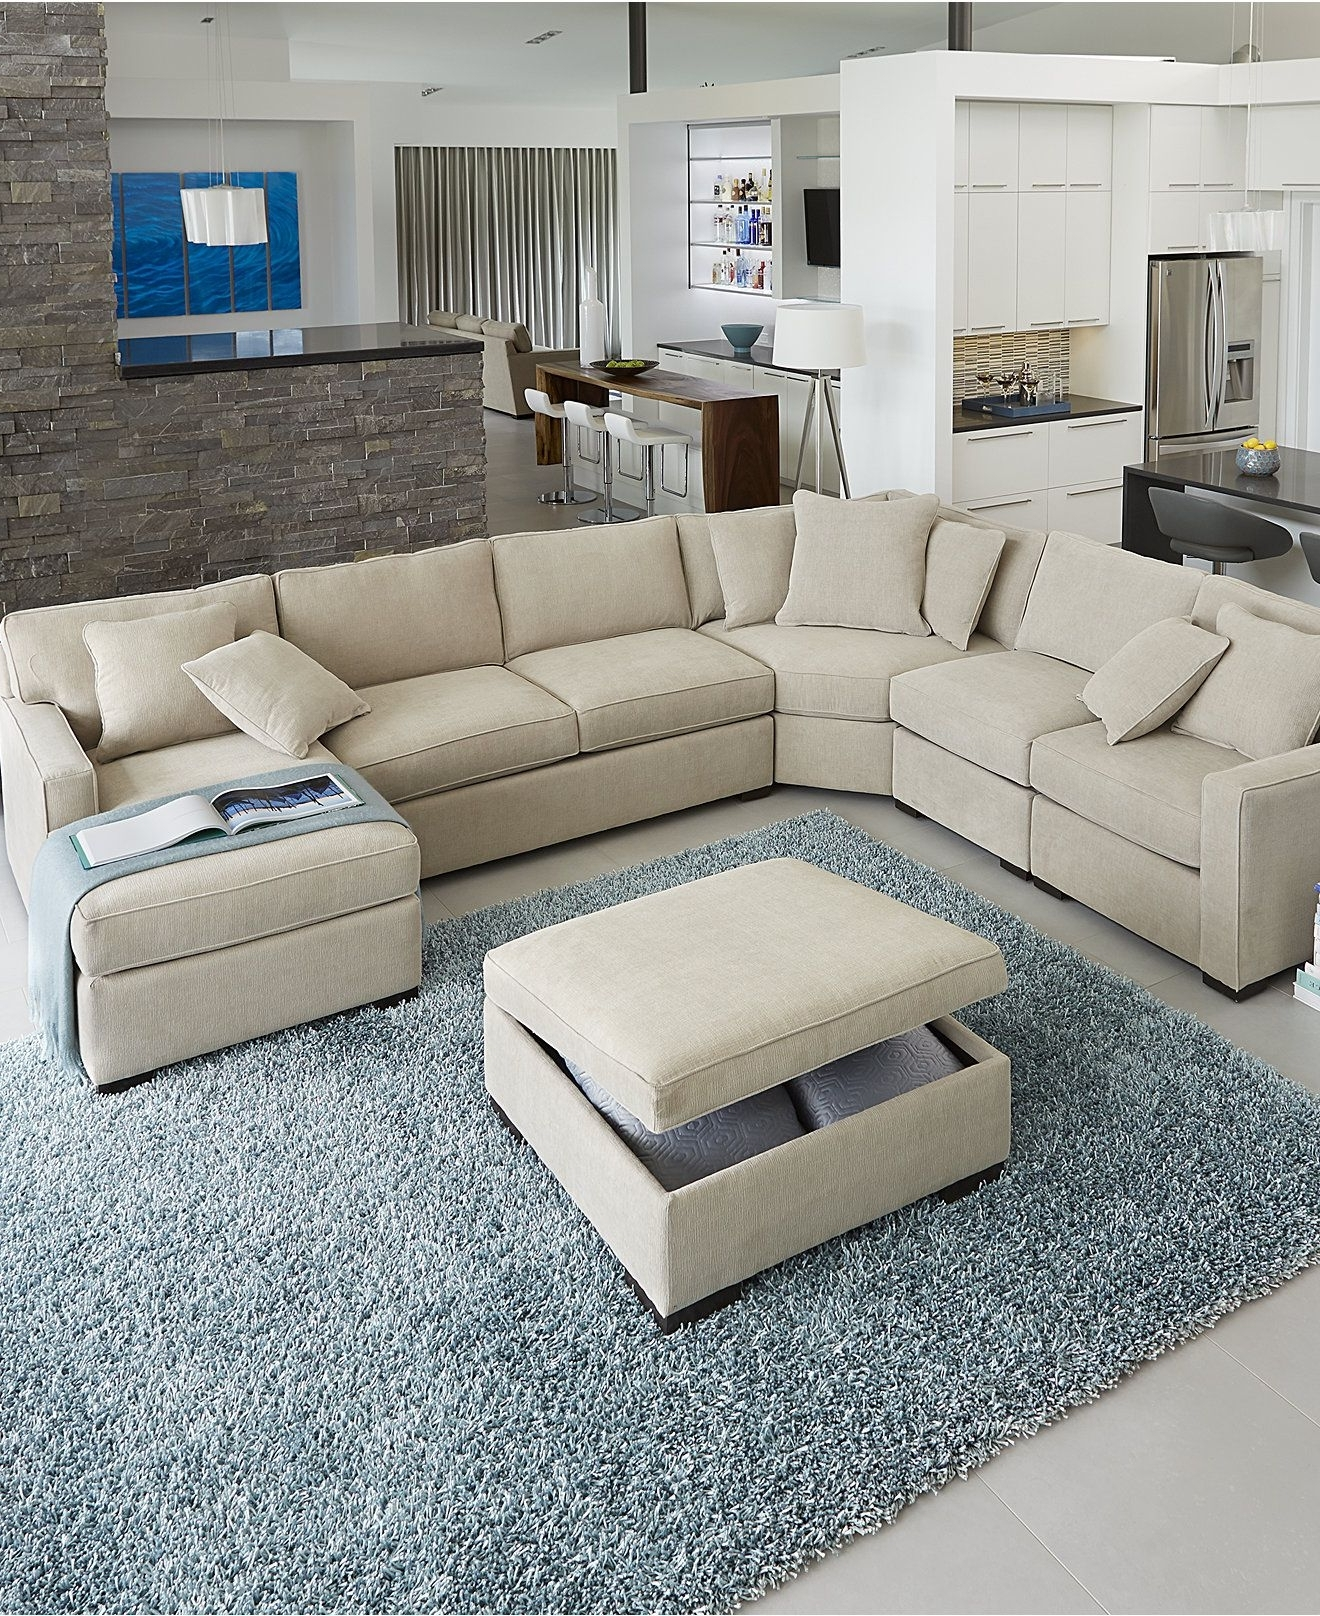 Popular Radley Fabric Sectional Sofa Collection, Created For Macy's In Macys Sectional Sofas (Gallery 5 of 20)